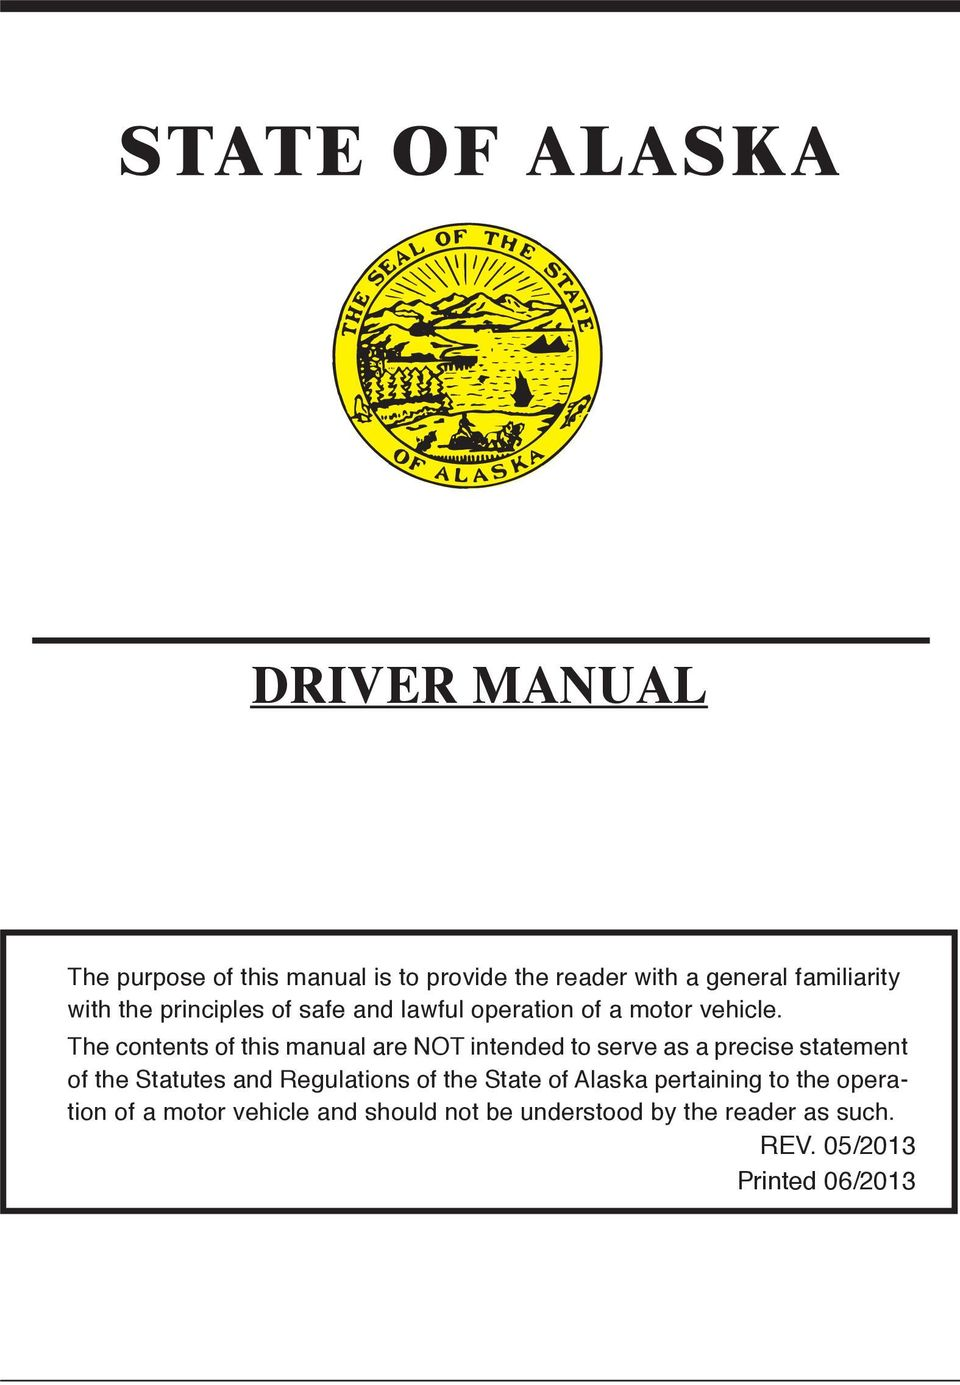 The contents of this manual are NOT intended to serve as a precise statement of the Statutes and